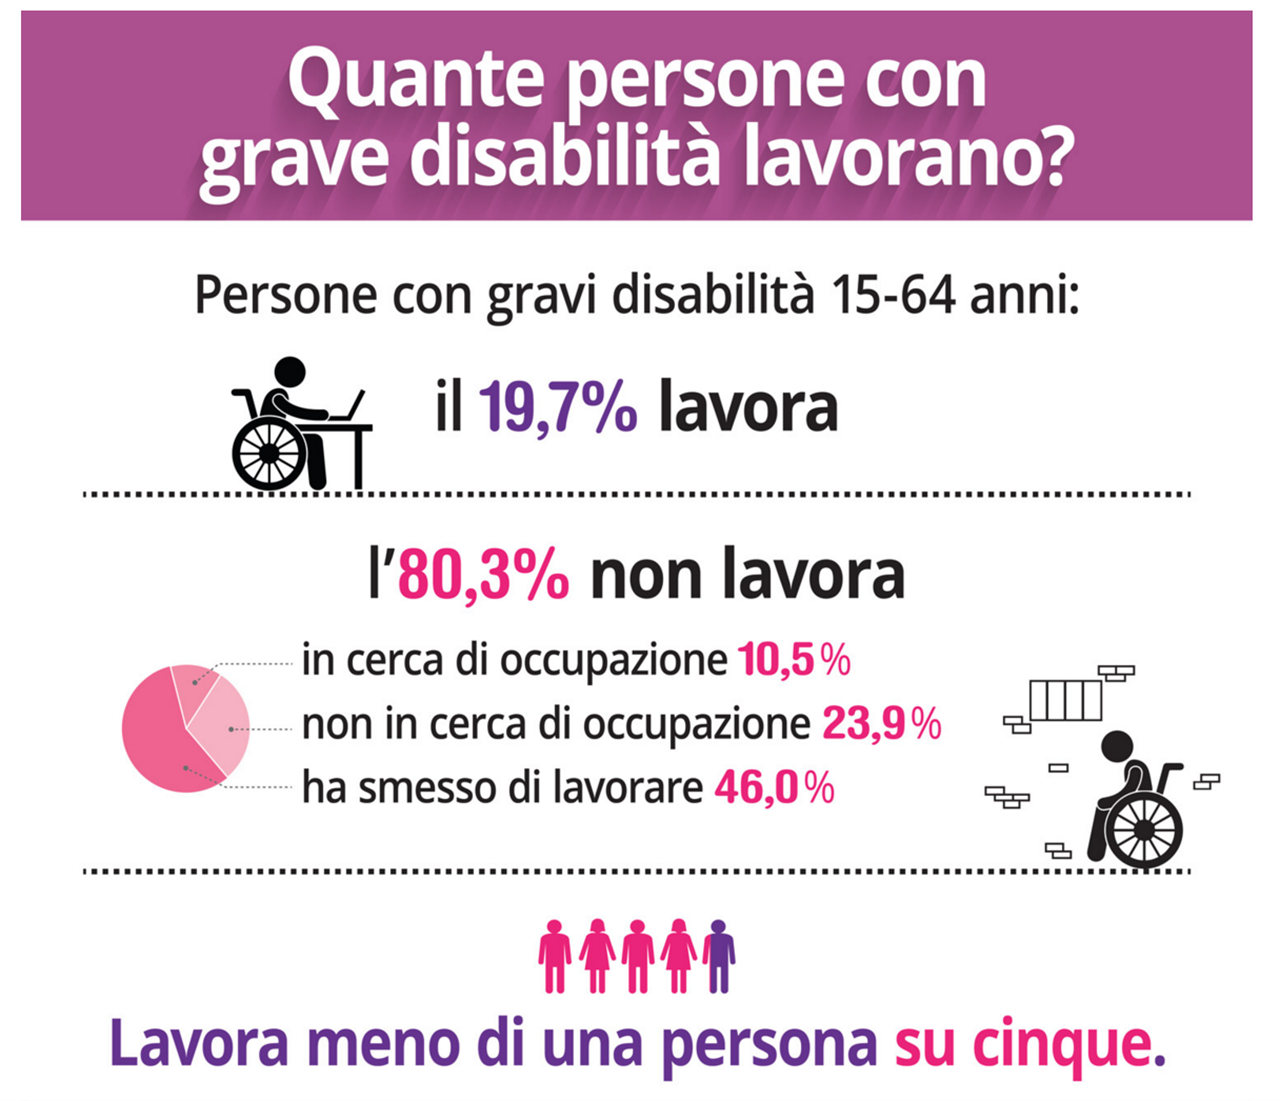 La disabilit in italia in numeri 02 12 2015 for Numero senatori e deputati in italia